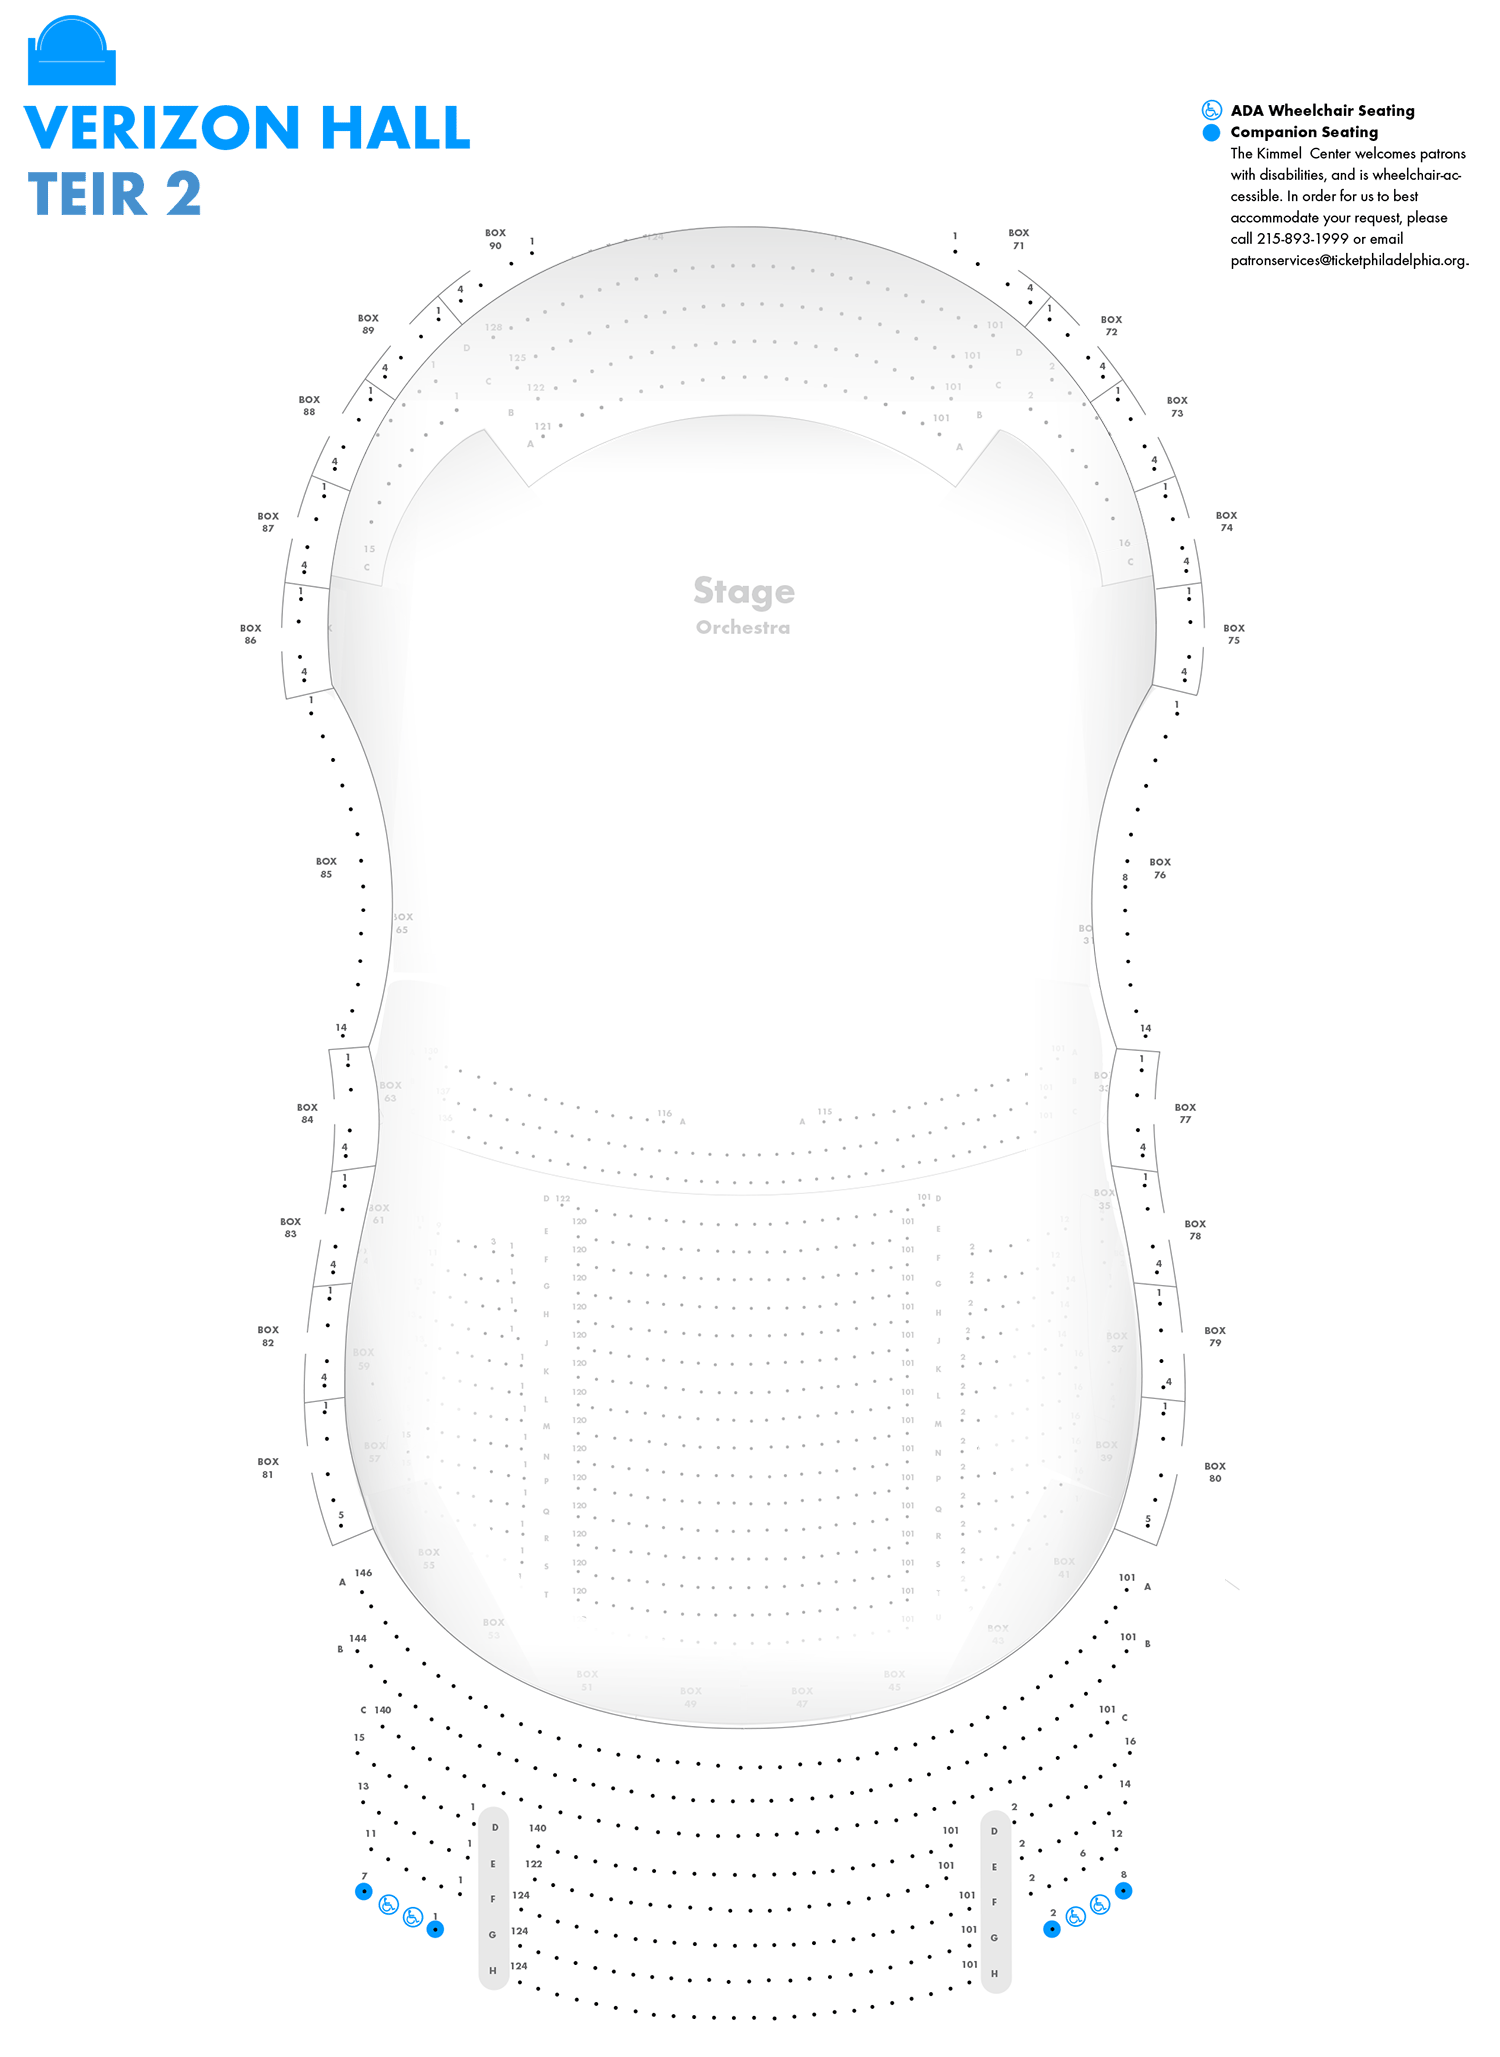 Verizon Hall Second Tier Seating Chart